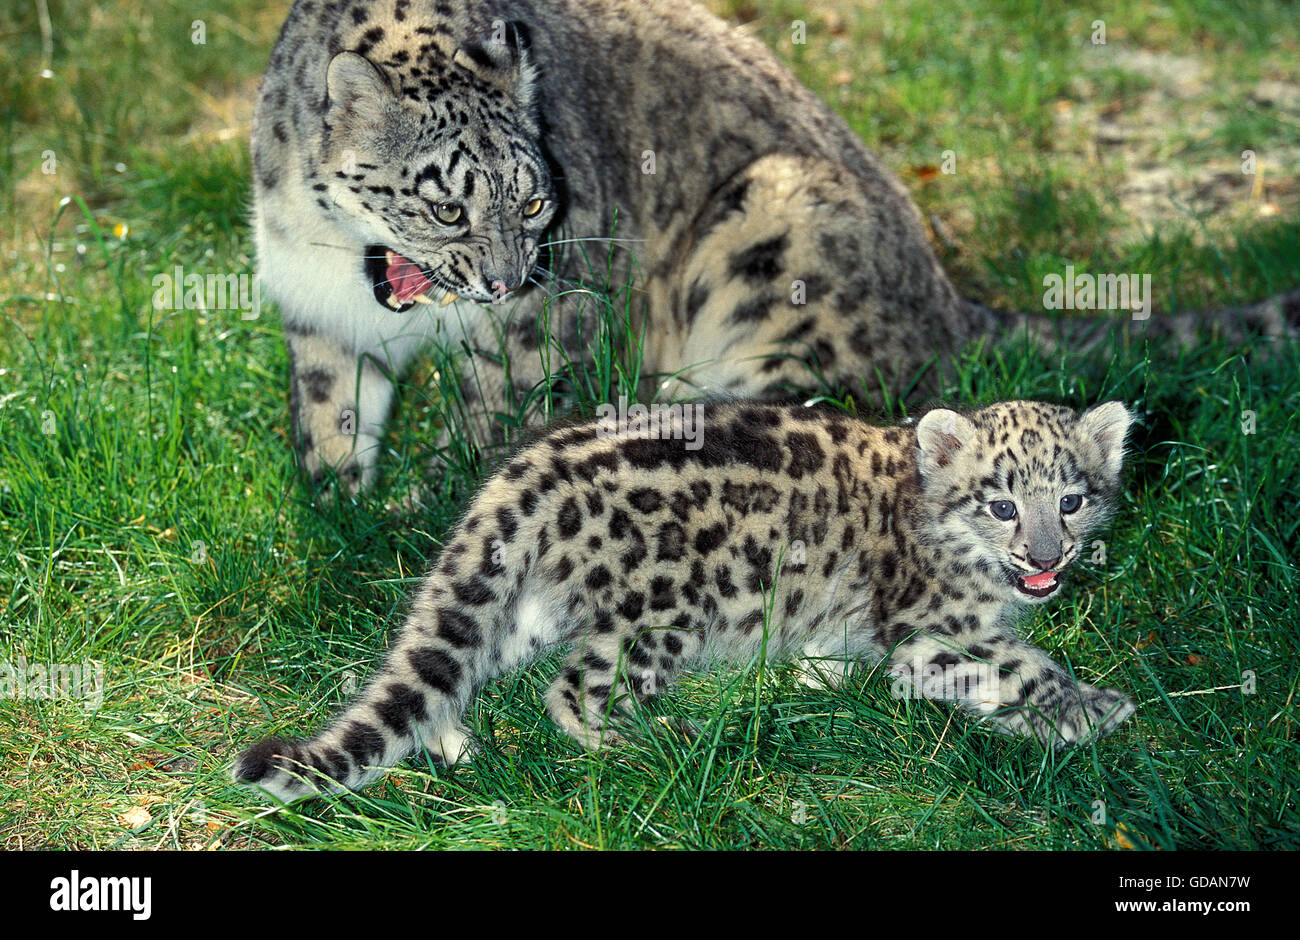 Snow Leopard or Ounce, uncia uncia, Female with Cub, Adult snarling - Stock Image